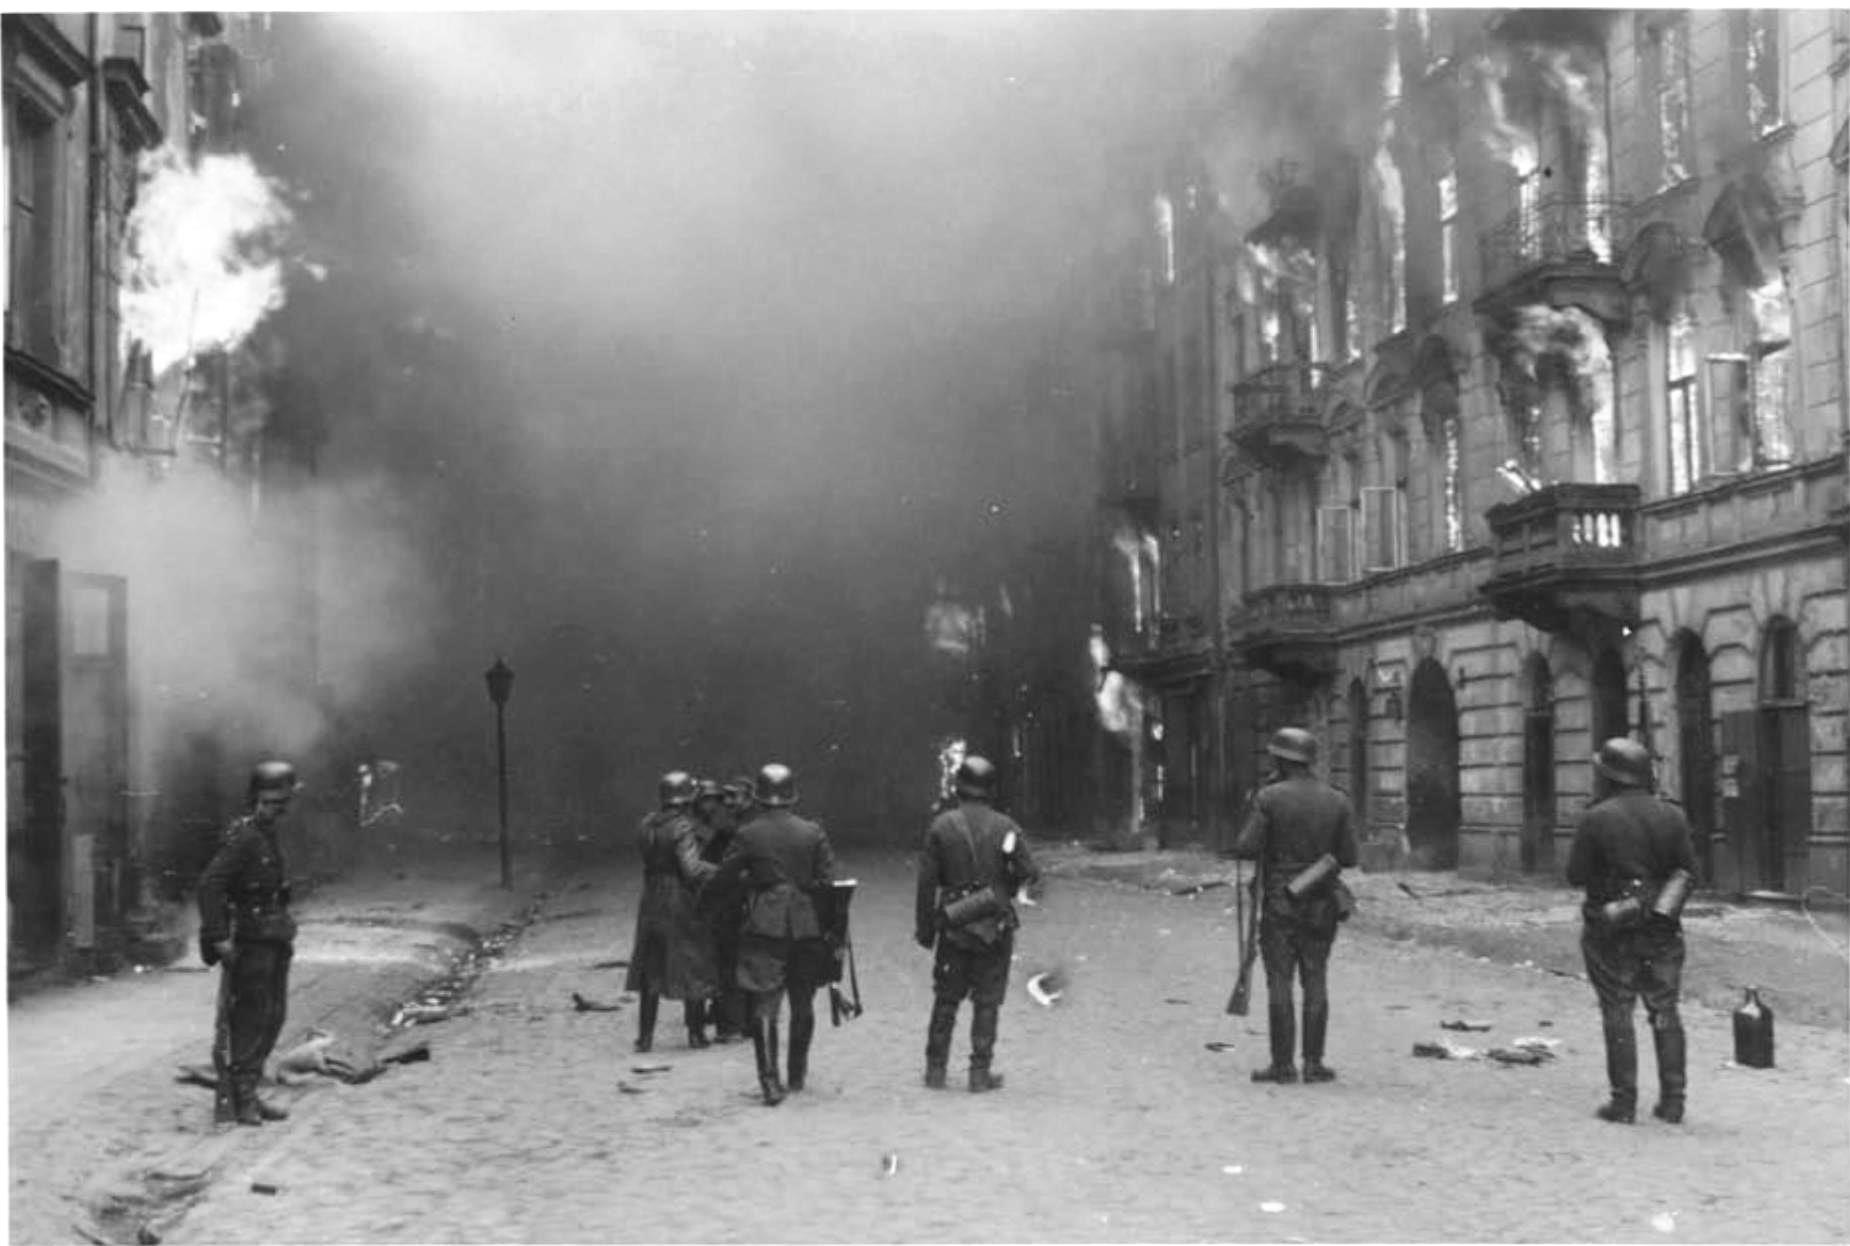 Stroop Report - Warsaw Ghetto Uprising - 10501